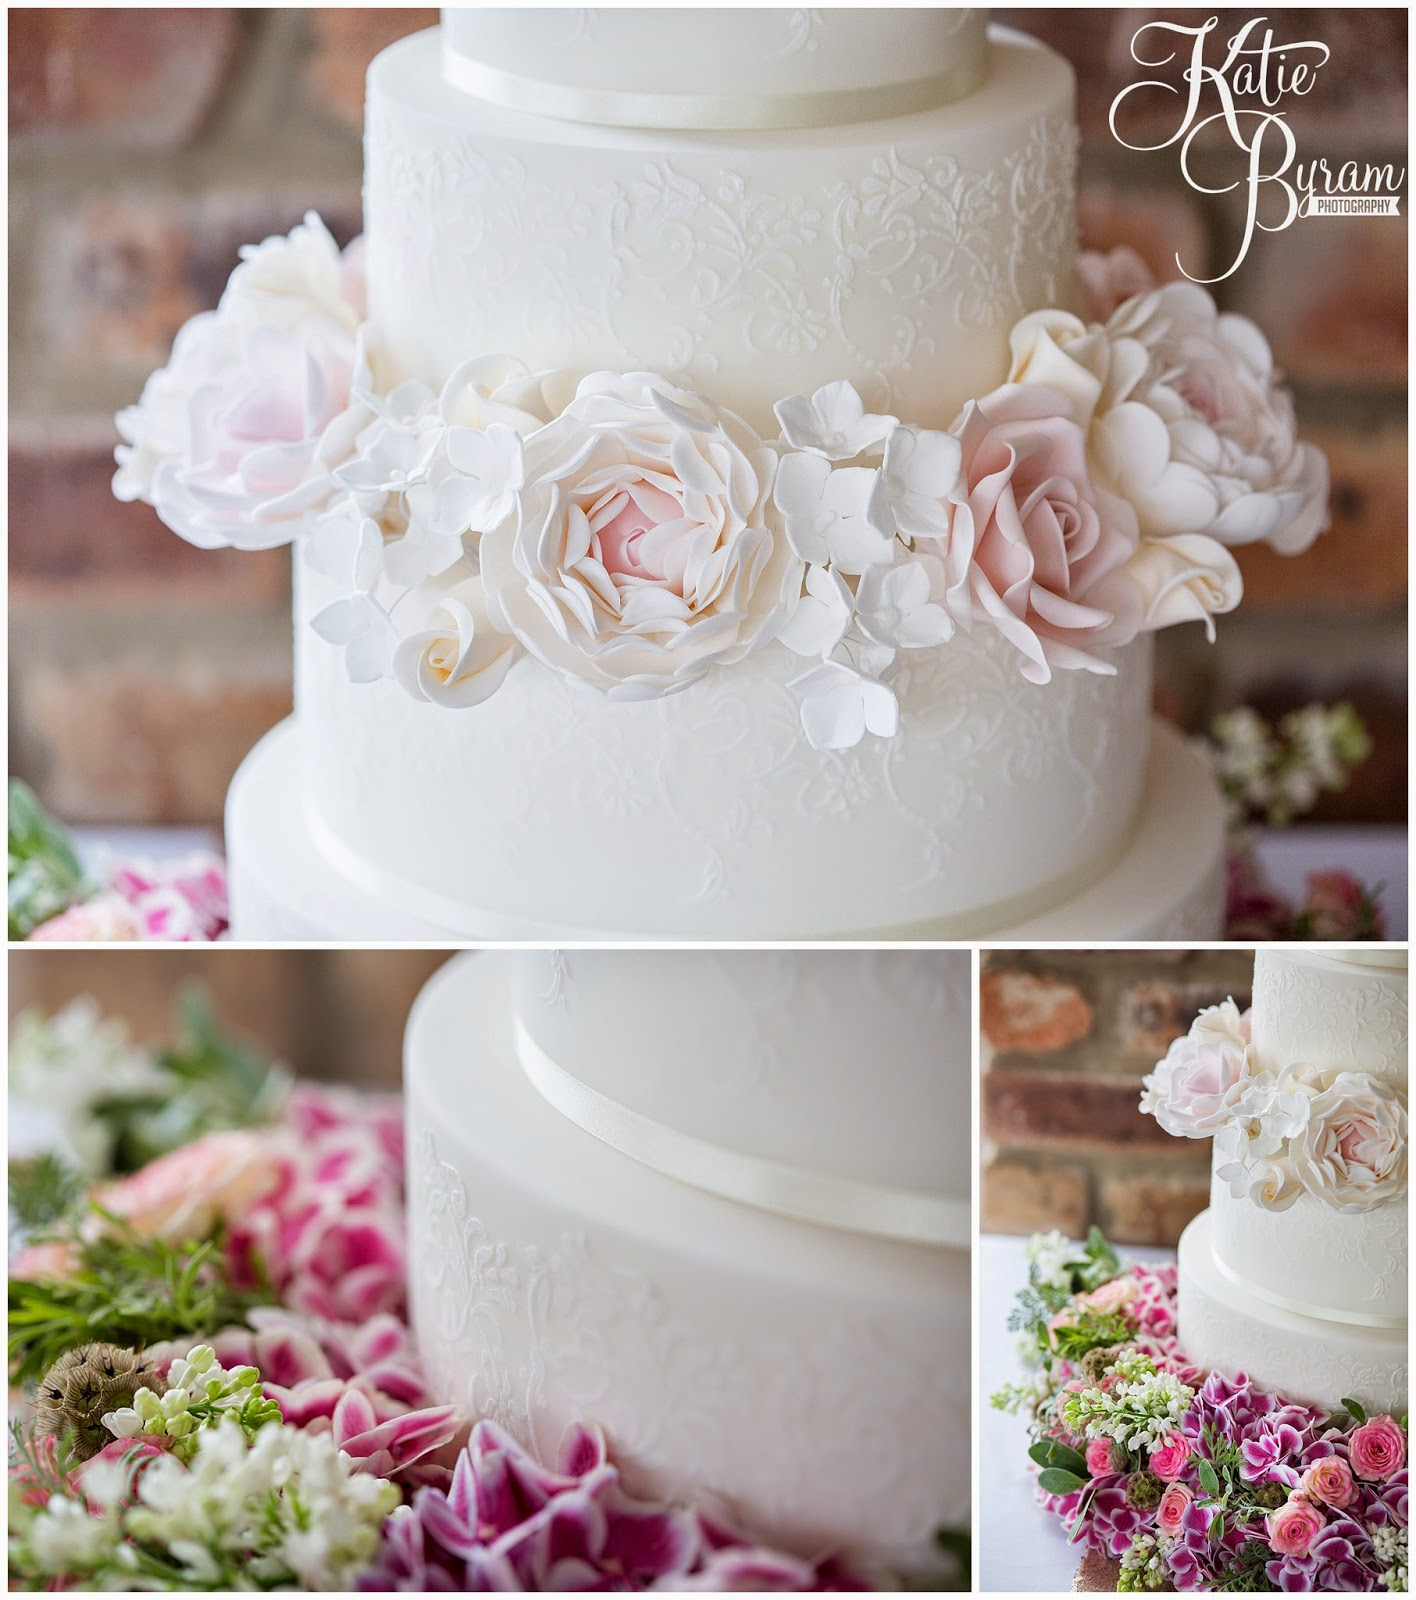 bels flowers, the master cakesmith, dawn cake maker, newton hall, ellingham hall, alnwick garden, northumberland wedding cake, northumberland wedding, katie byram photography